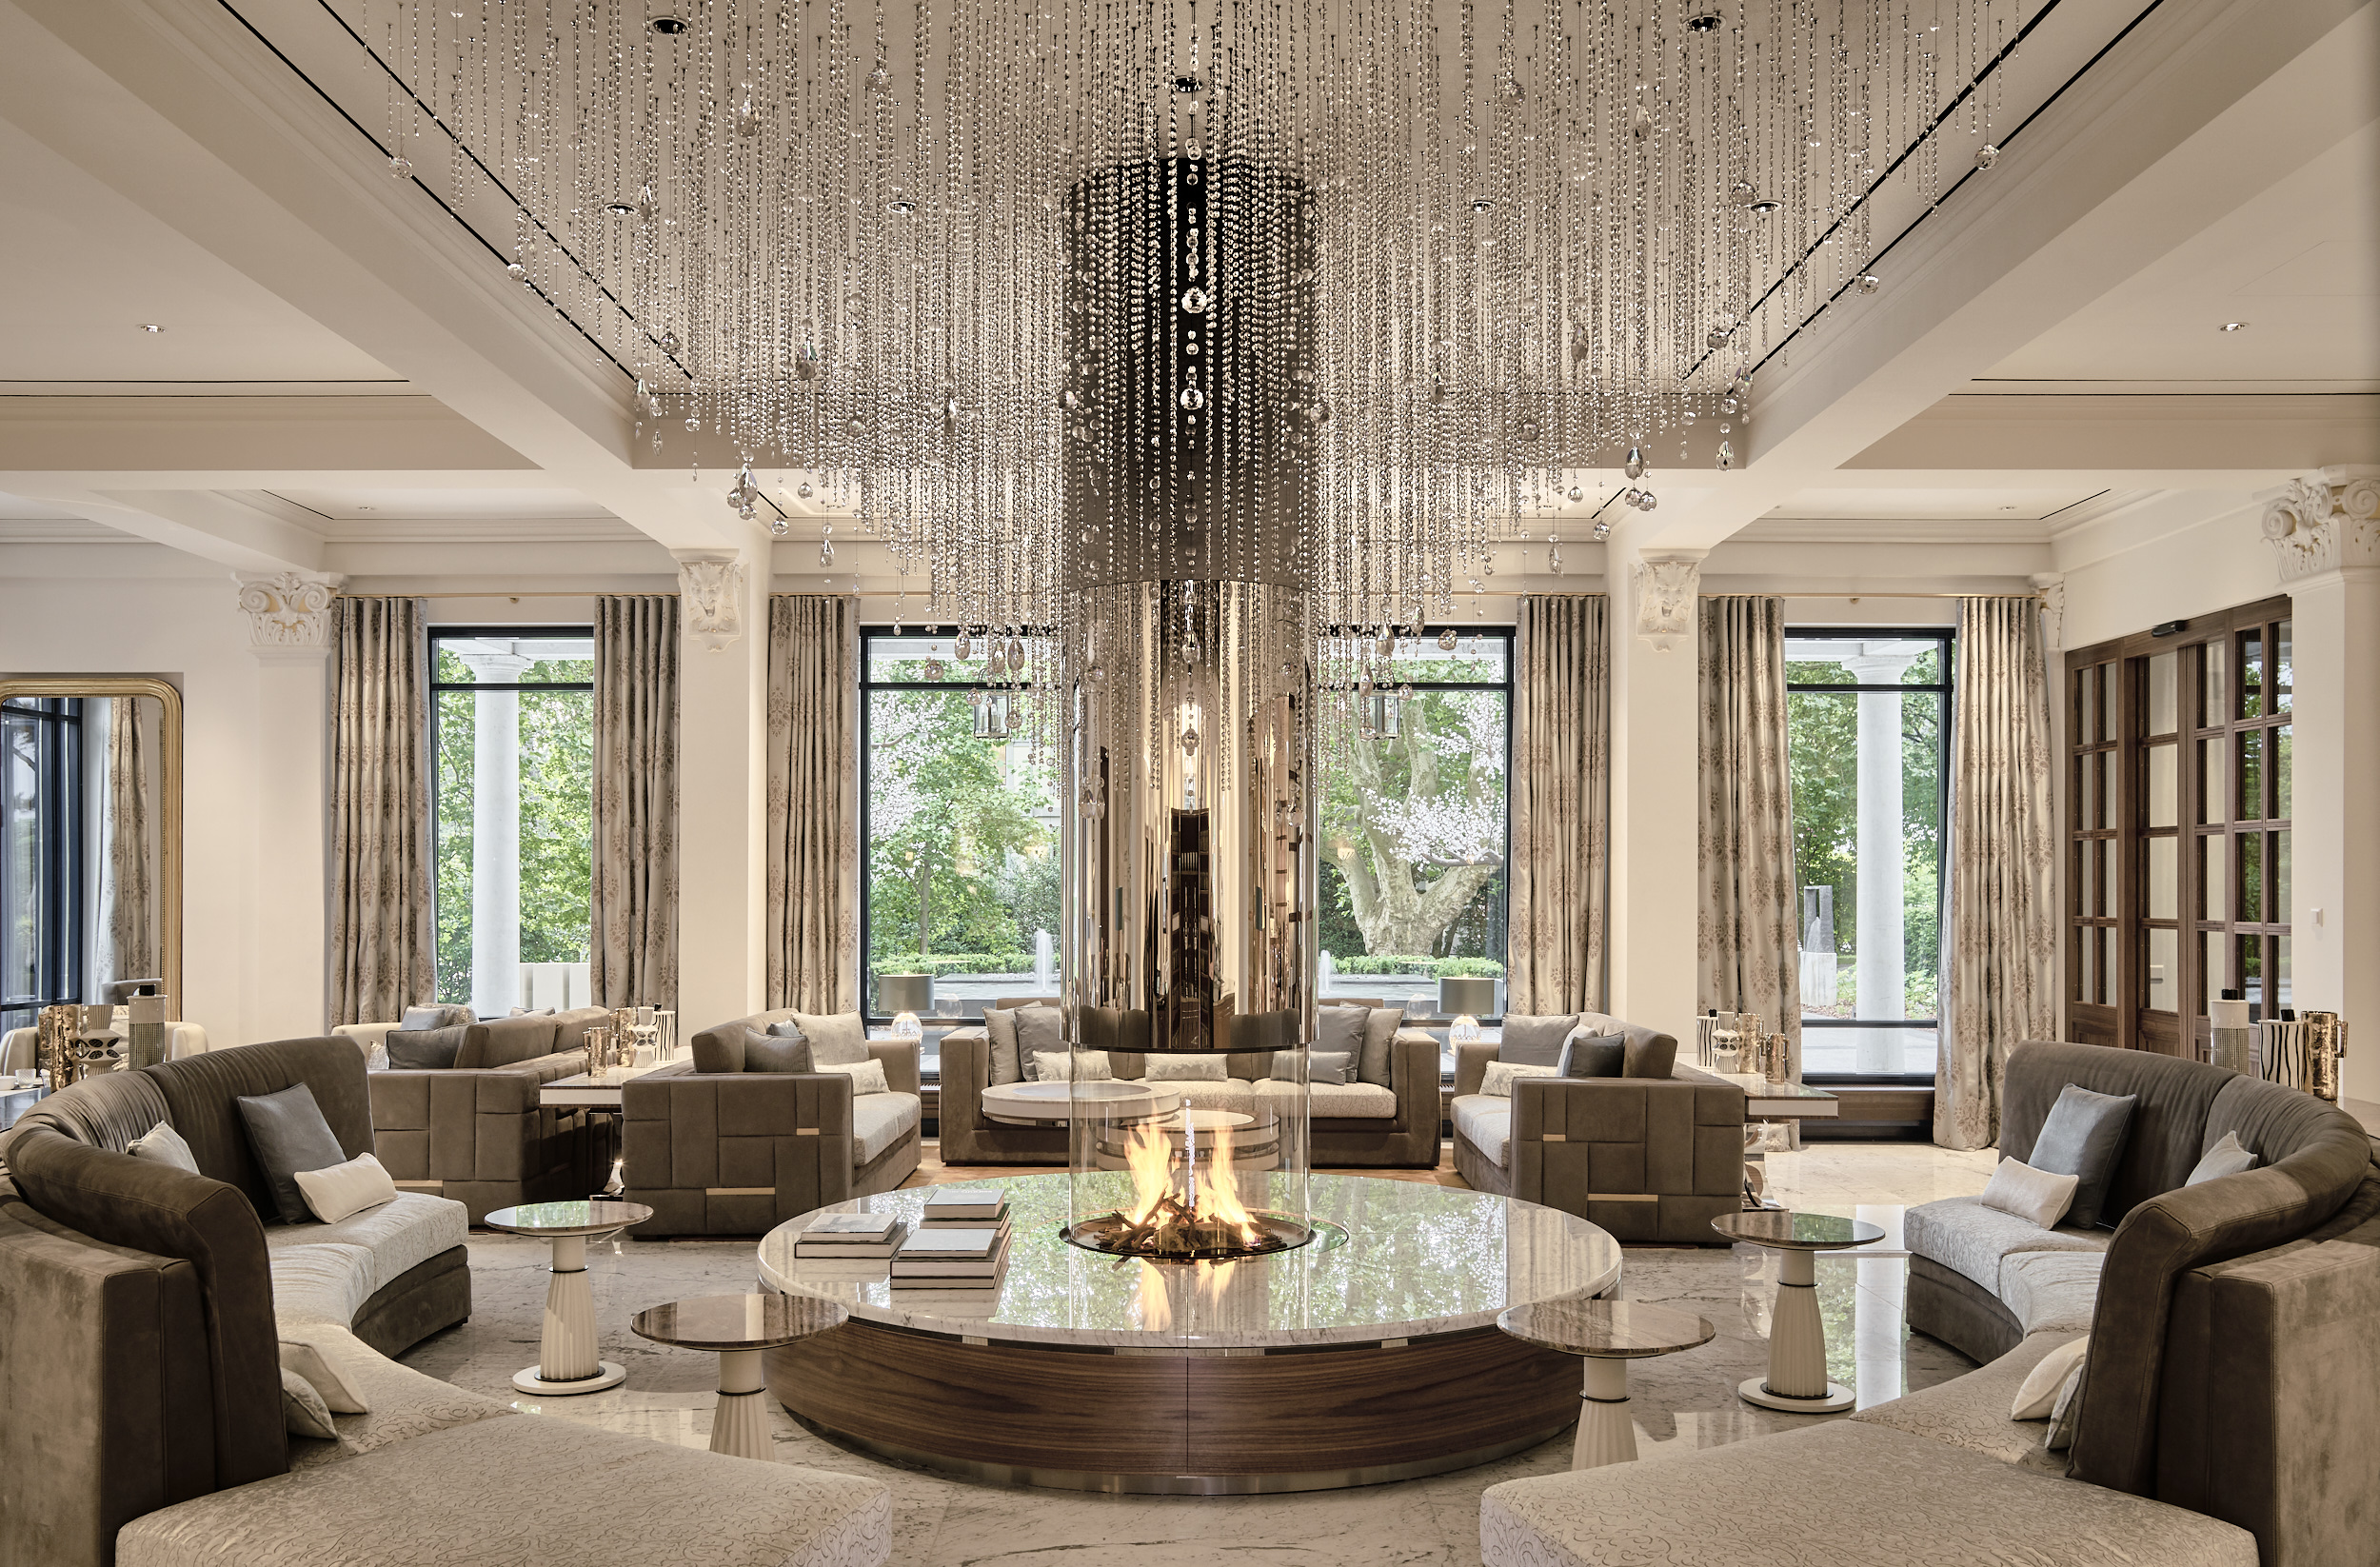 Grand Resort Quellenhof (Bad Ragaz) - lobby